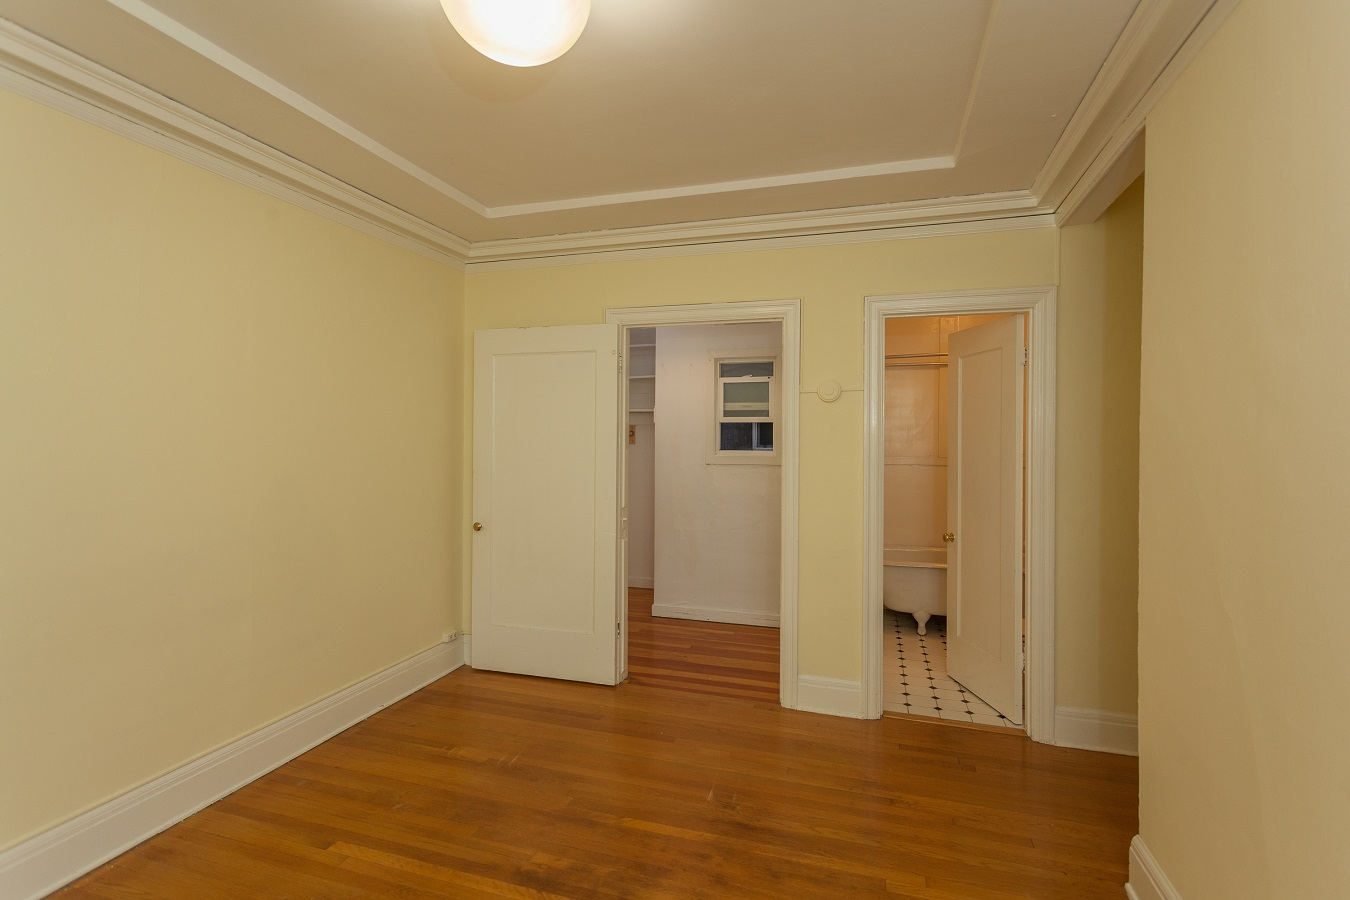 846 Bush Street, San Francisco, California, United States 94108, ,1 BathroomBathrooms,Apartment,Studio,Bush Street,1005